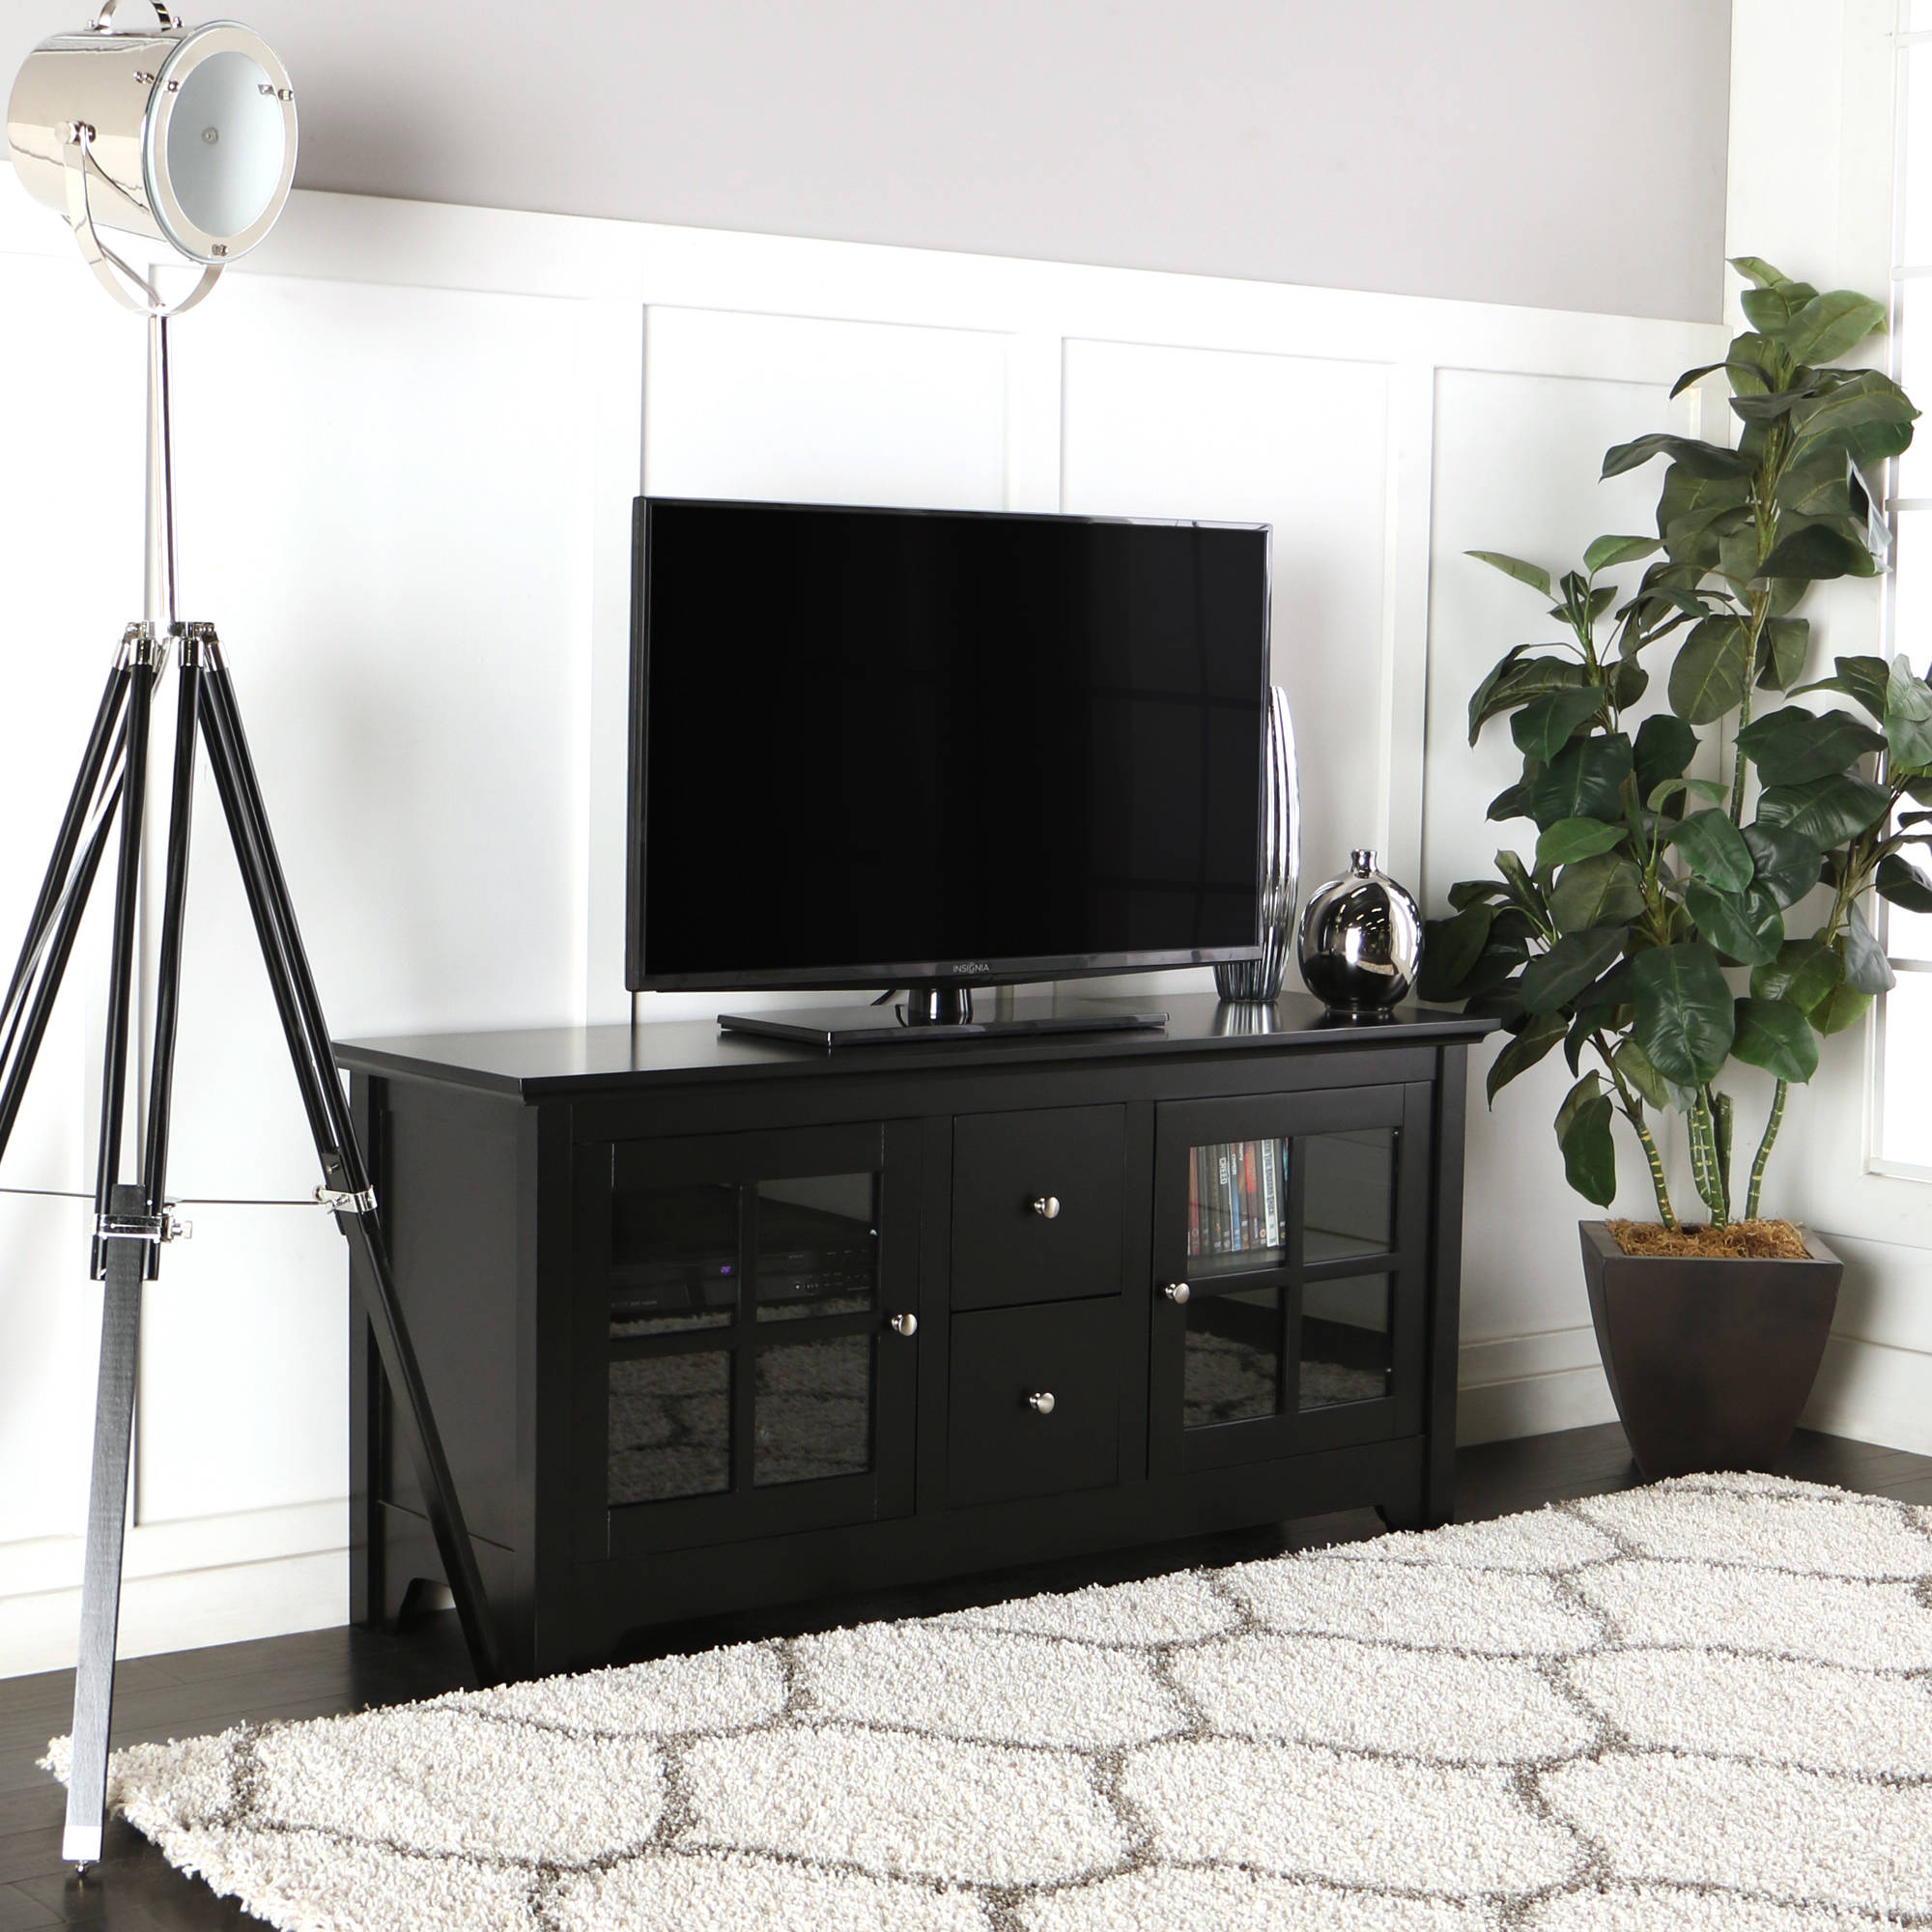 living room drawers. Walker Edison Wood Matte Black TV Console with 2 Drawers for TVs up to 55  Multiple Colors Walmart com